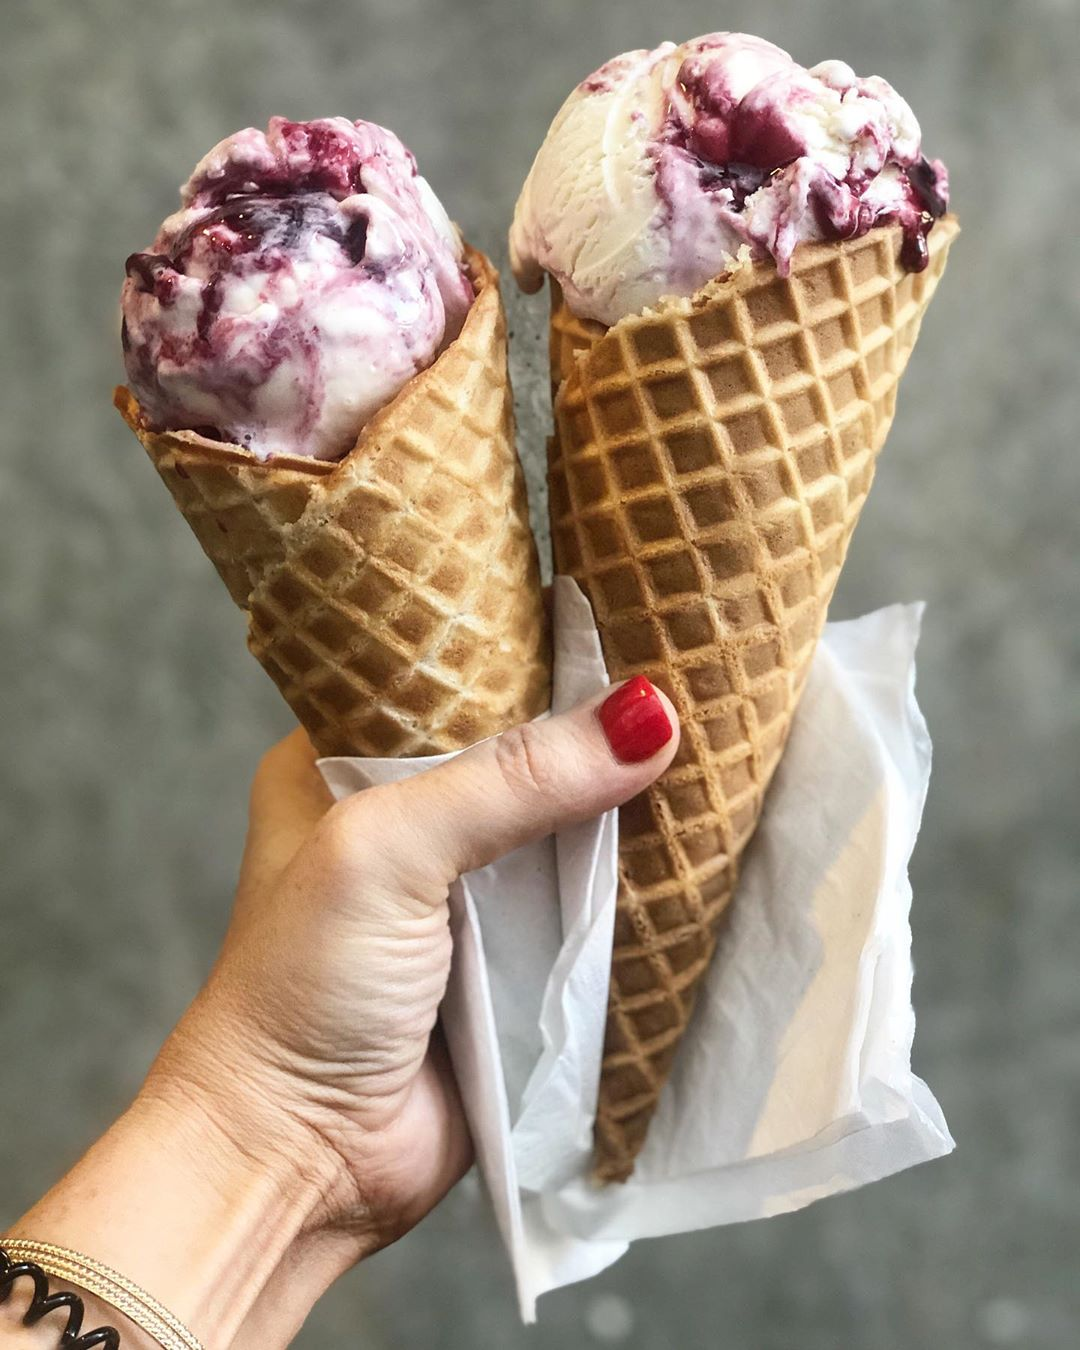 Salt & Straw is an AMAZING ice cream parlor in Portland you just HAVE to visit #foodietravel #travel #portland